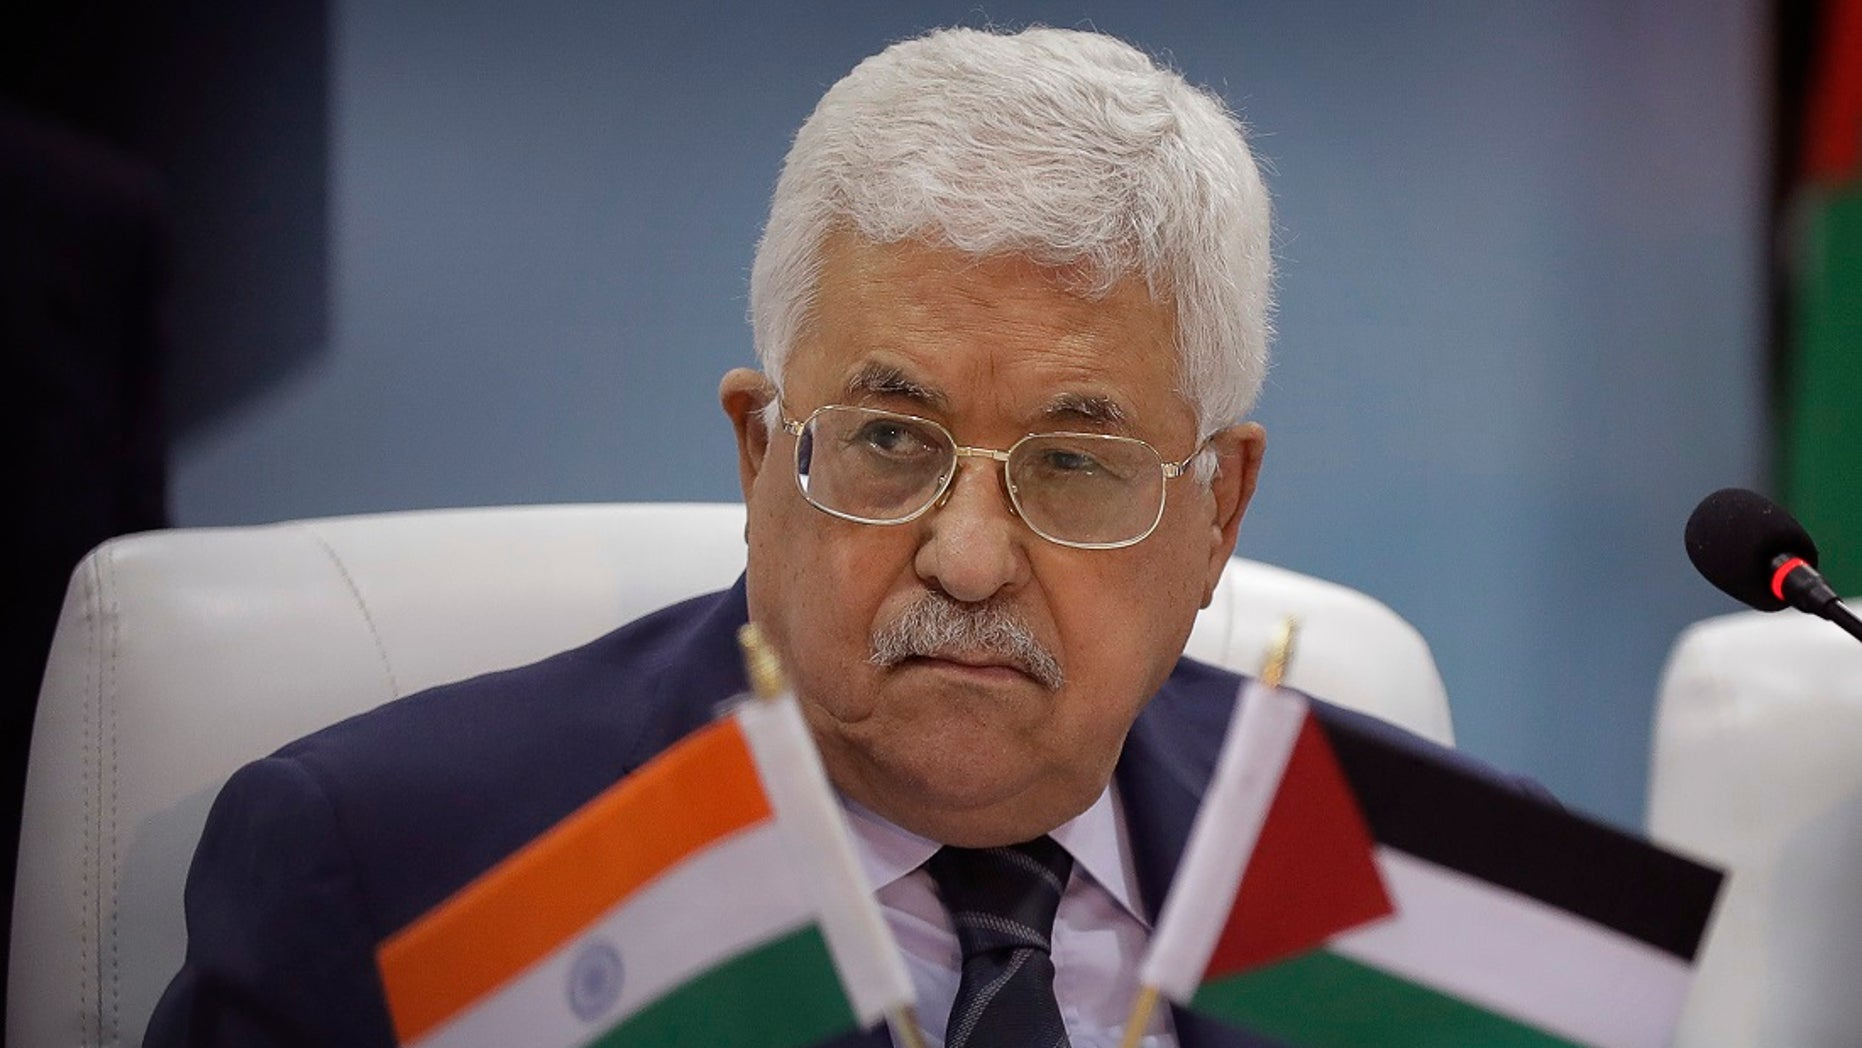 Palestinian President Mahmoud Abbas in New Delhi, India, Monday, May 15, 2017.